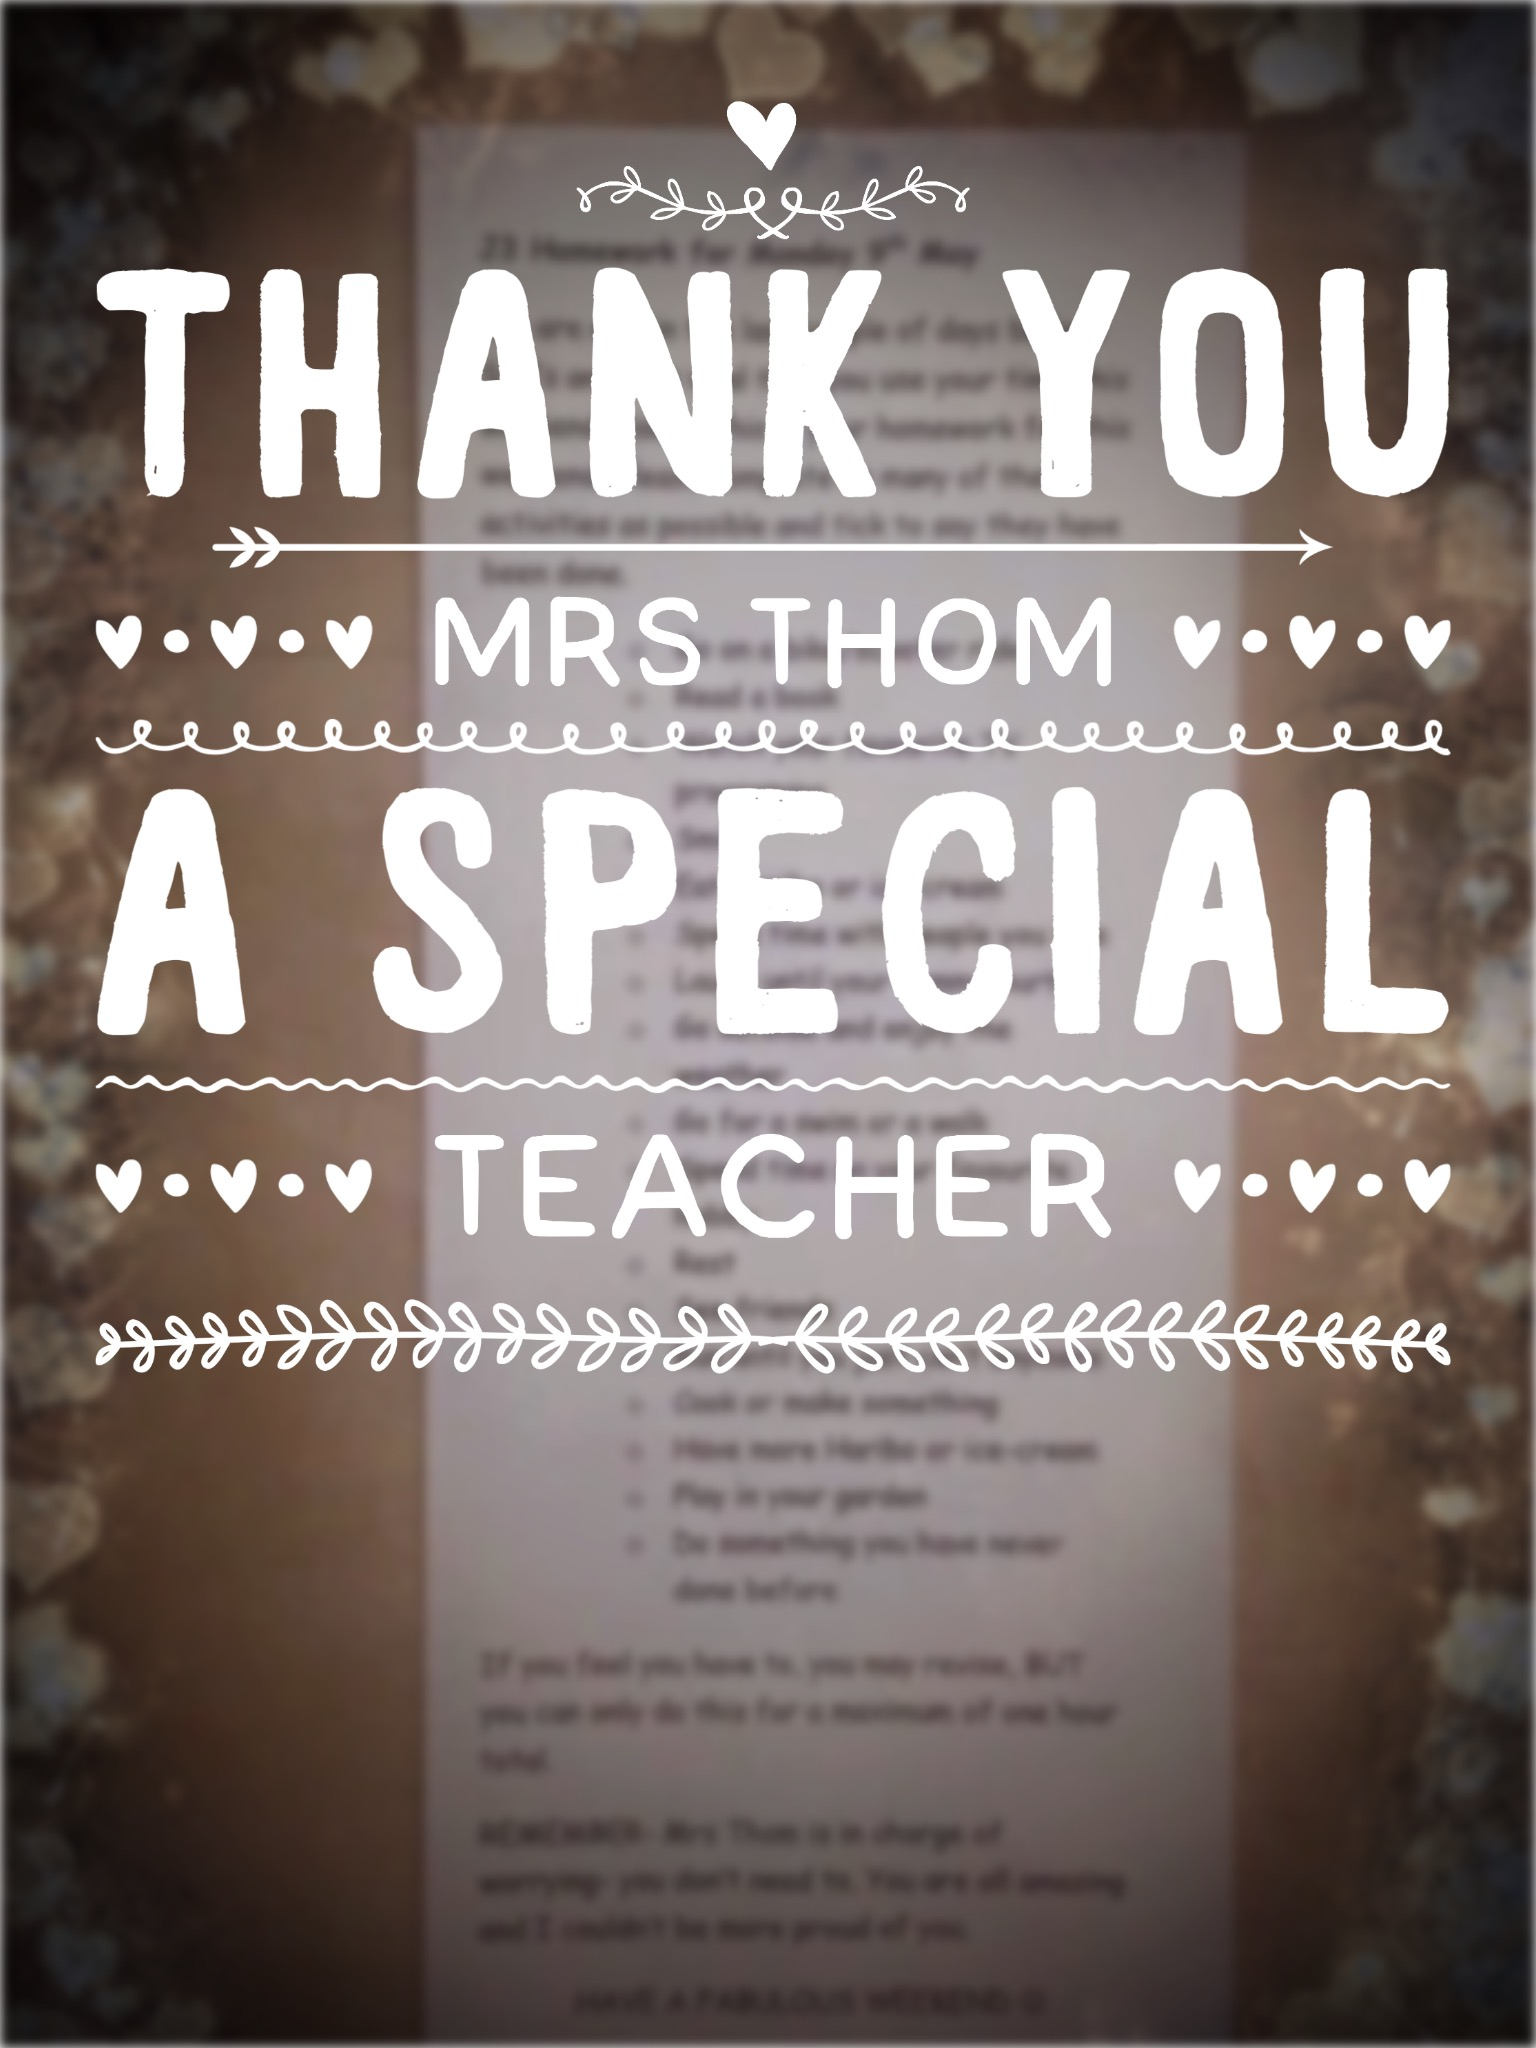 FOUND! Special Teacher, Mrs Thom